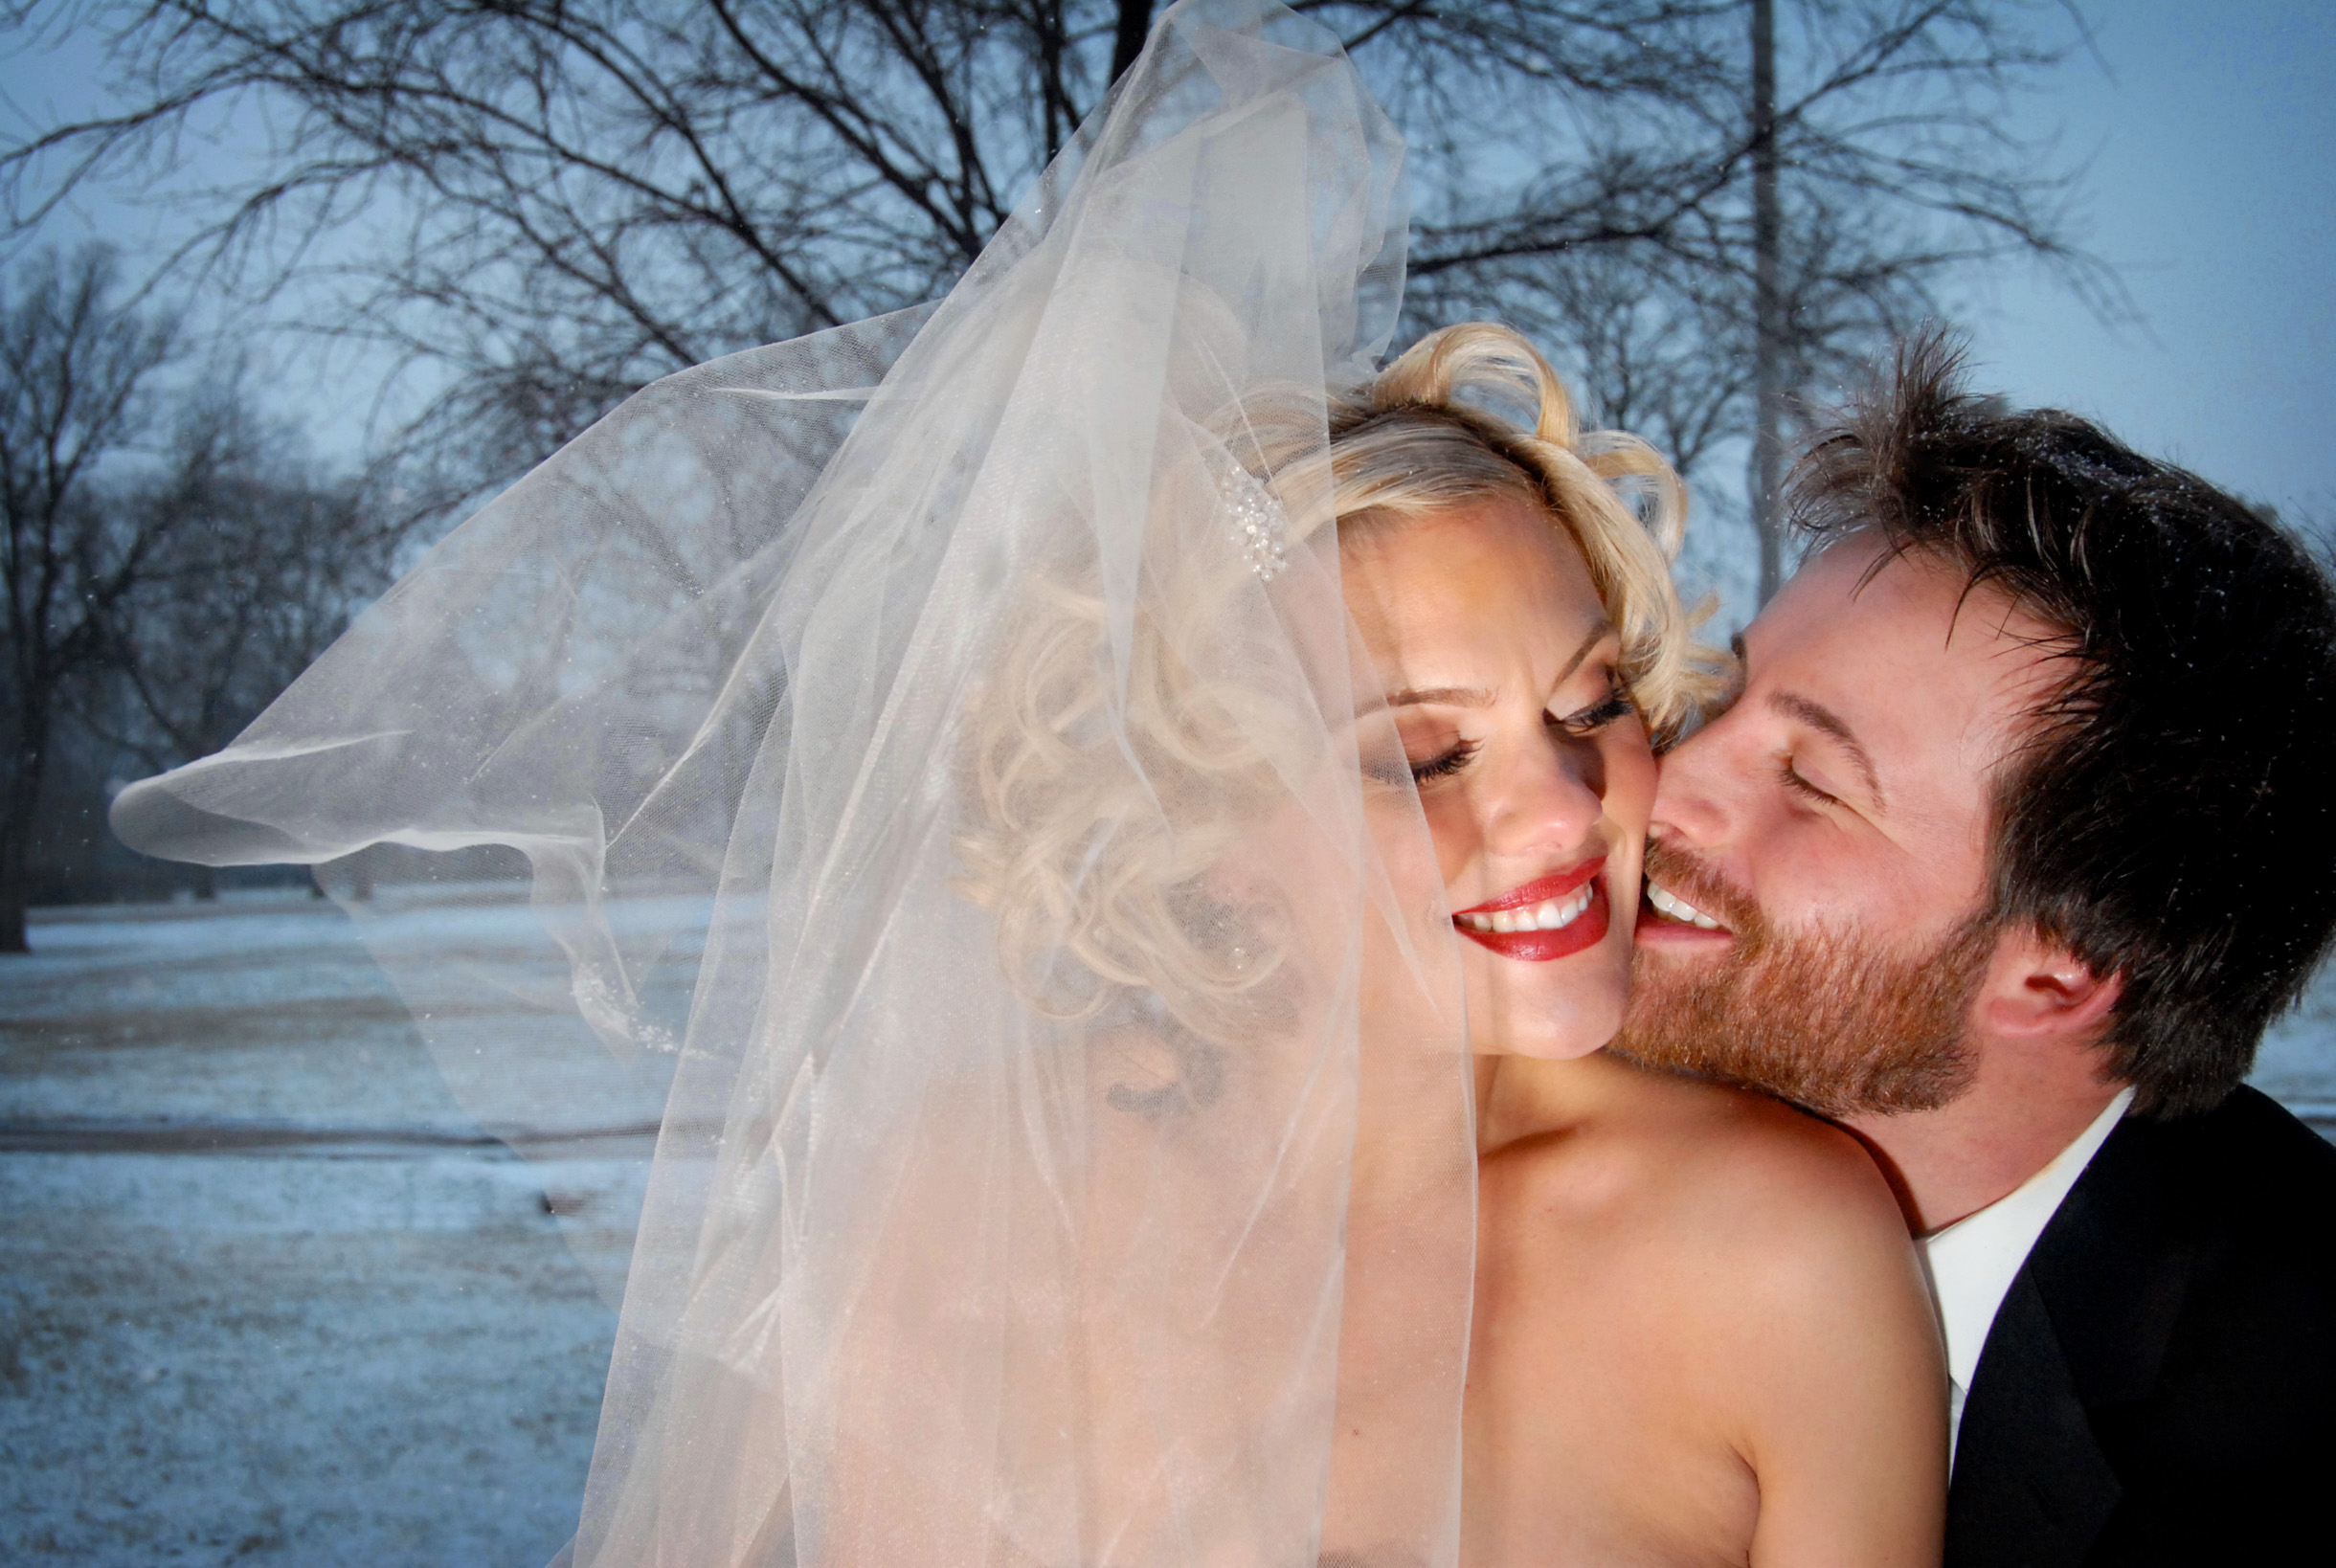 Bride's veil blowing in the winter with snow on the ground and groom cuddling with bride-086